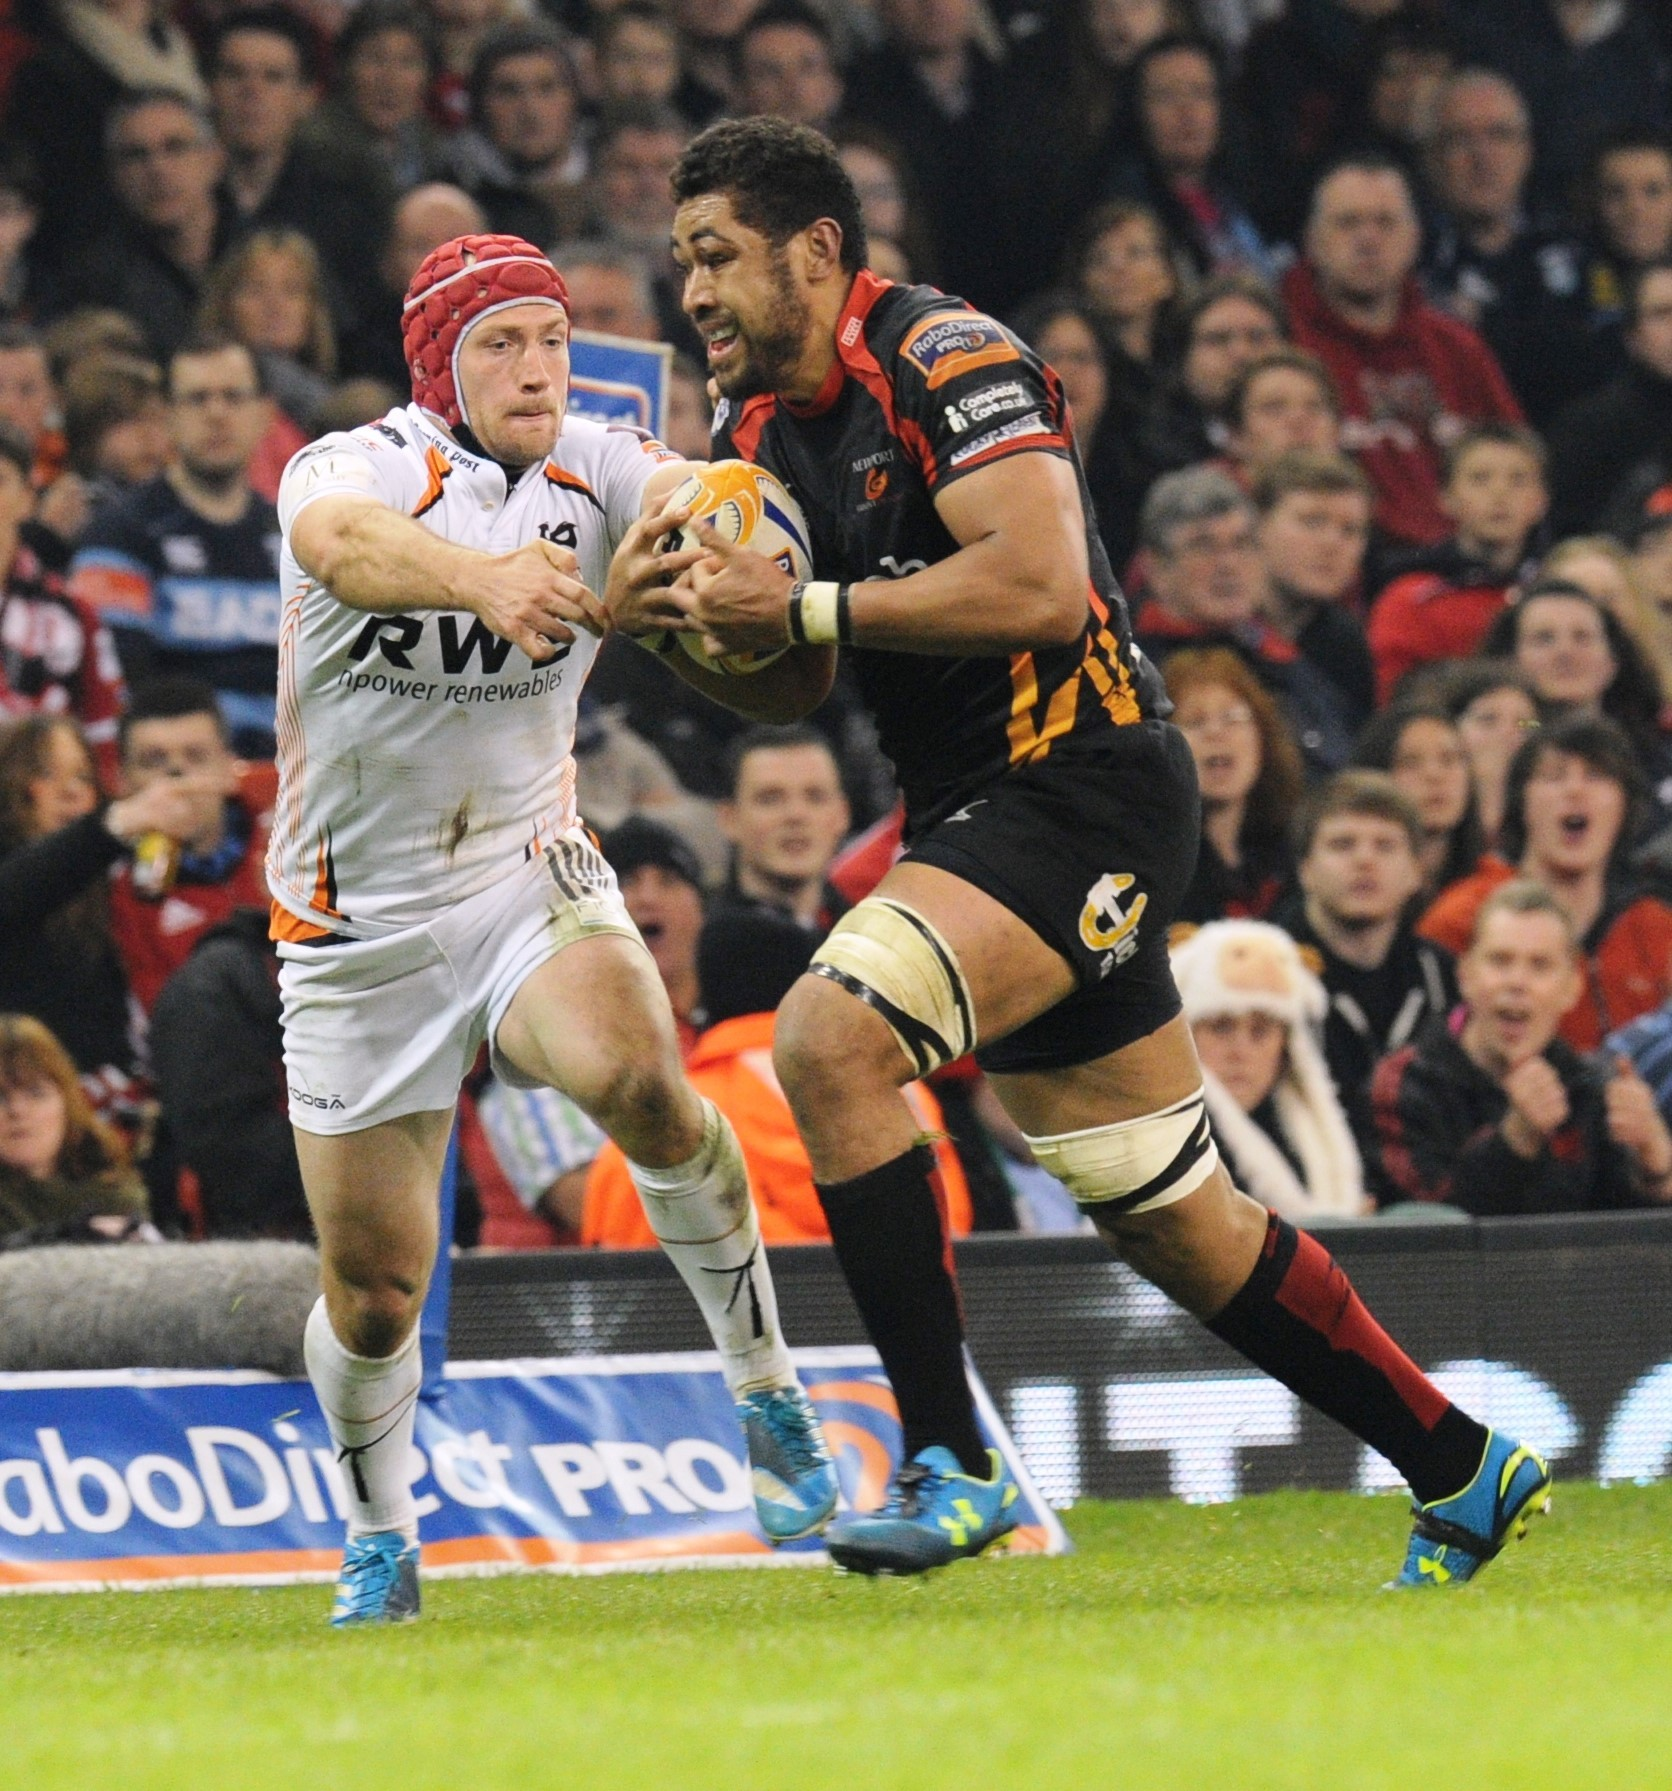 Taulupe Faletau to start Dragons' Pro12 opener  in Connacht on the